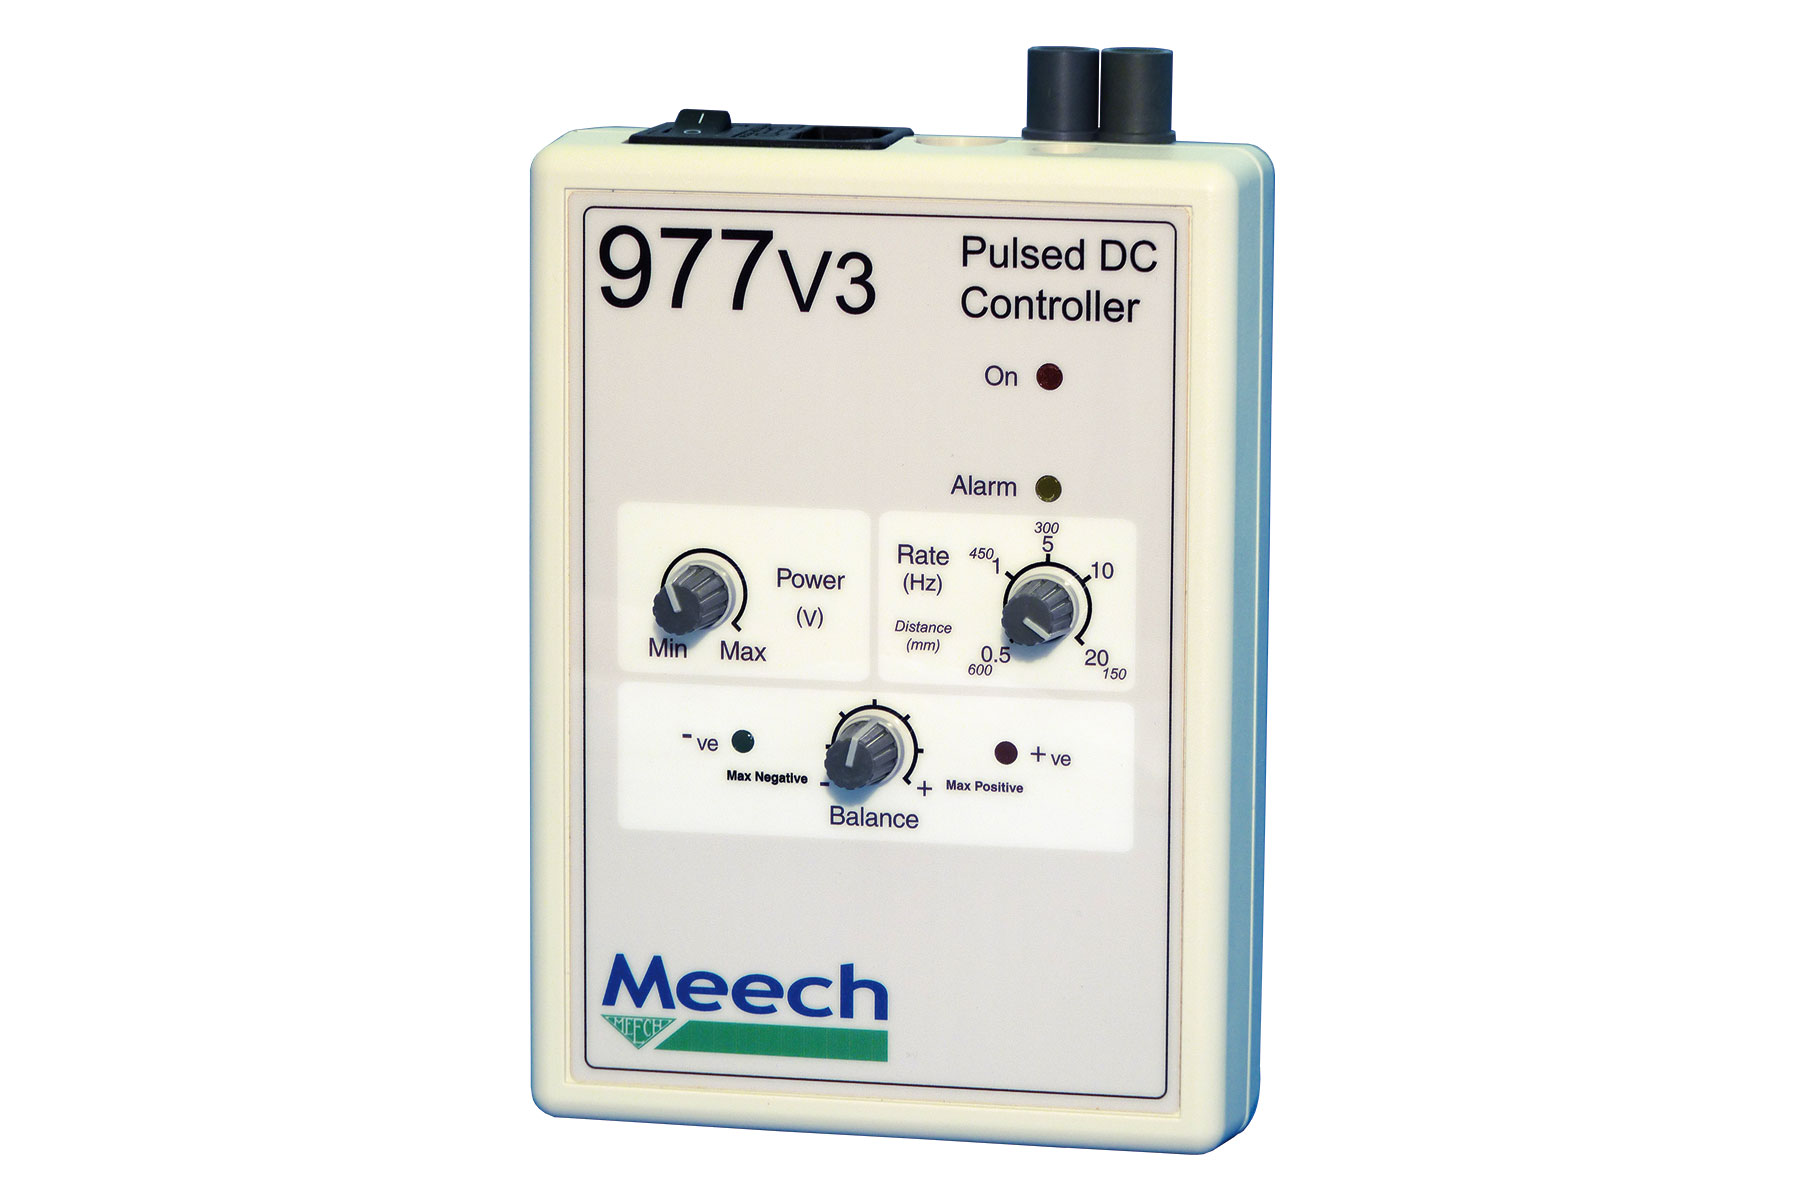 977v3 Pulsed DC Controller